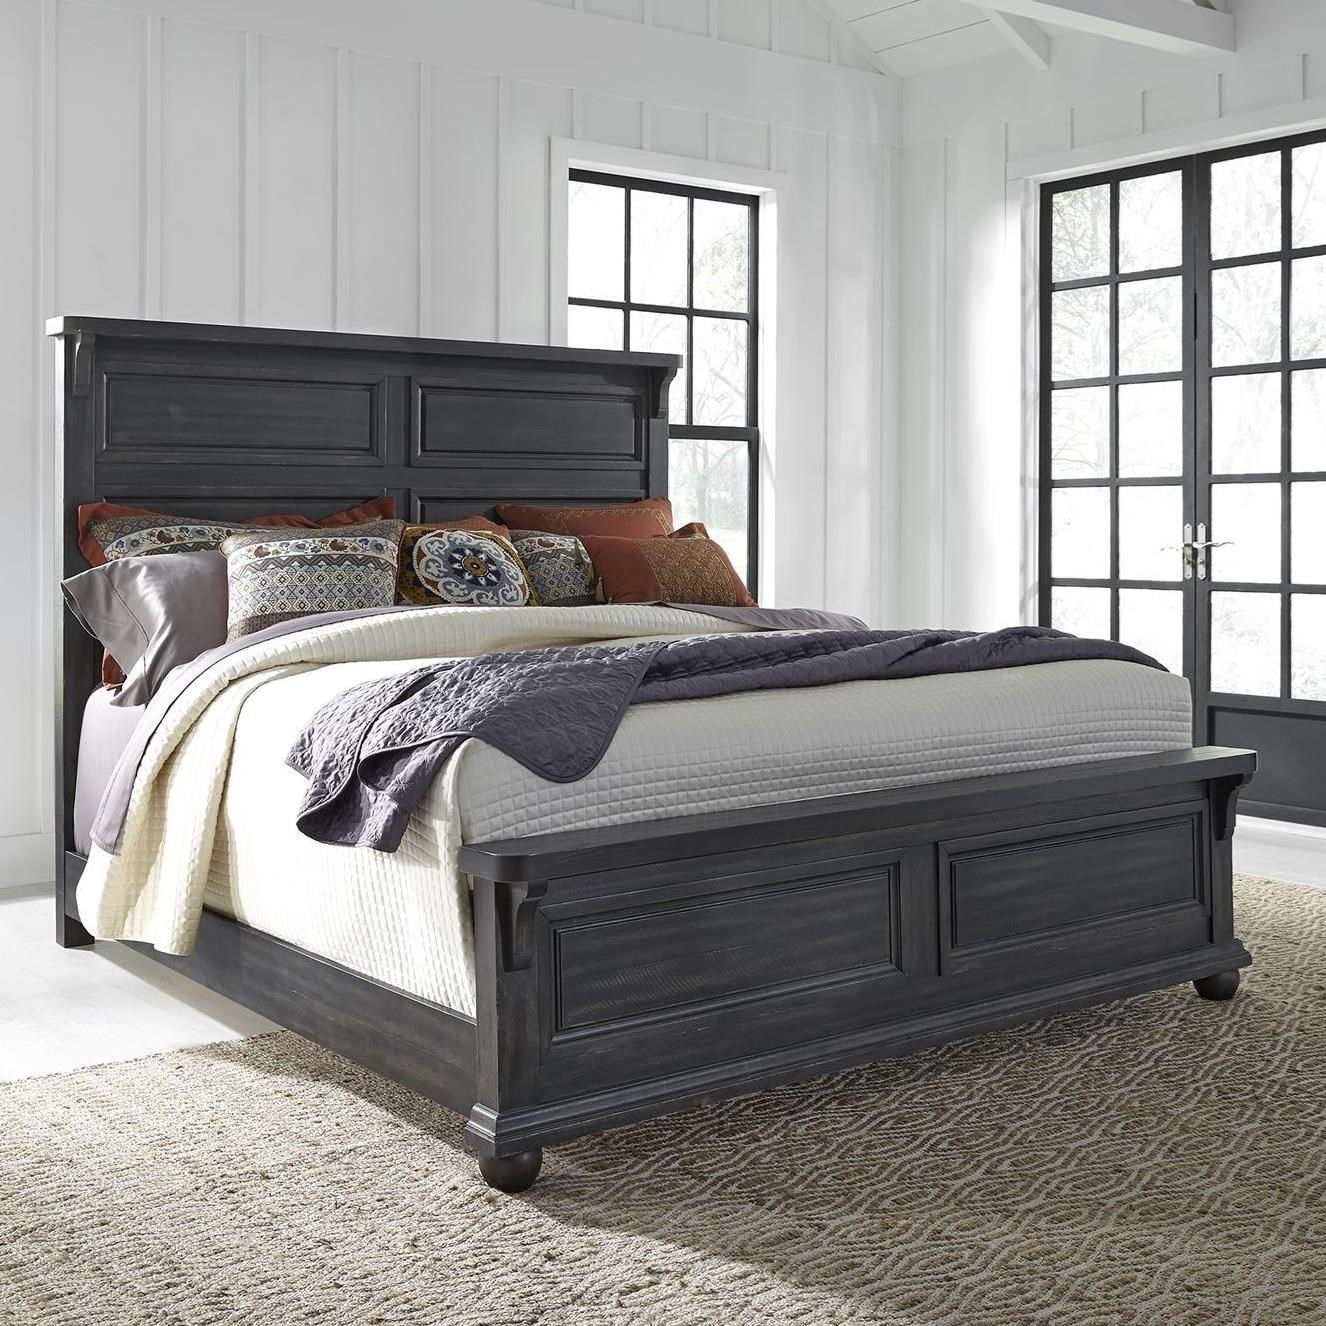 Harvest Home King Panel Bed by Liberty Furniture at Northeast Factory Direct